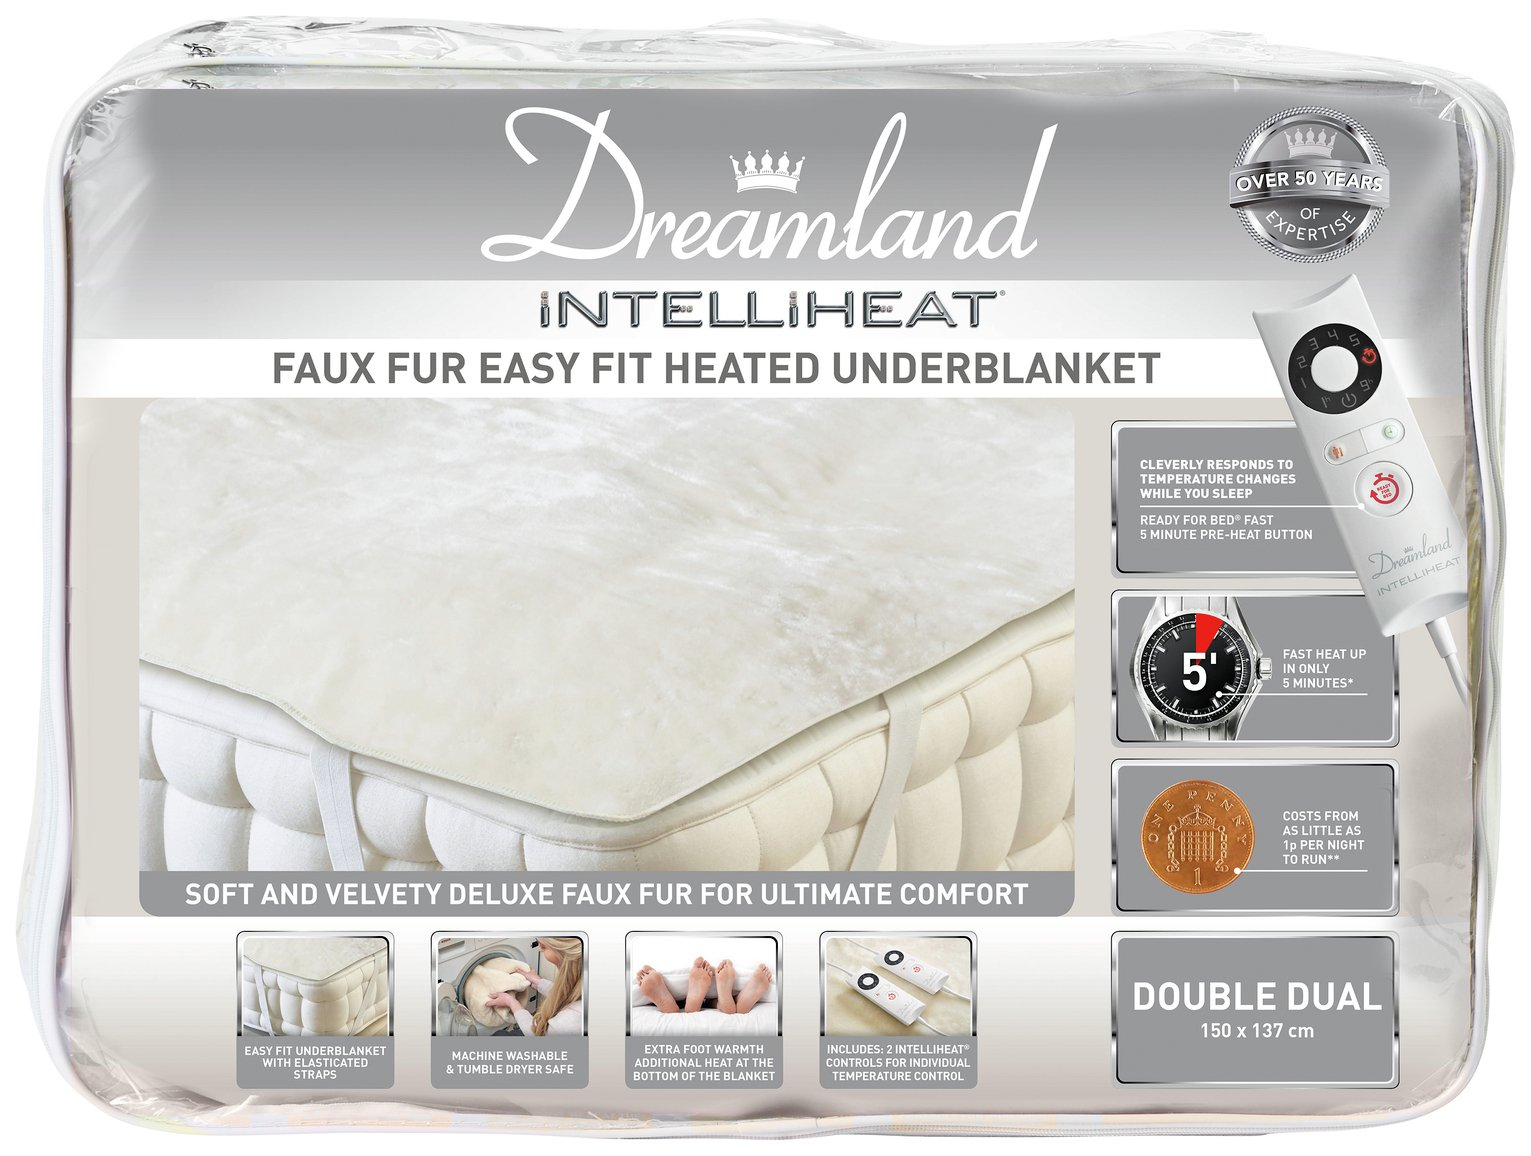 Dreamland Intelliheat Dual Control Electric Blanket review